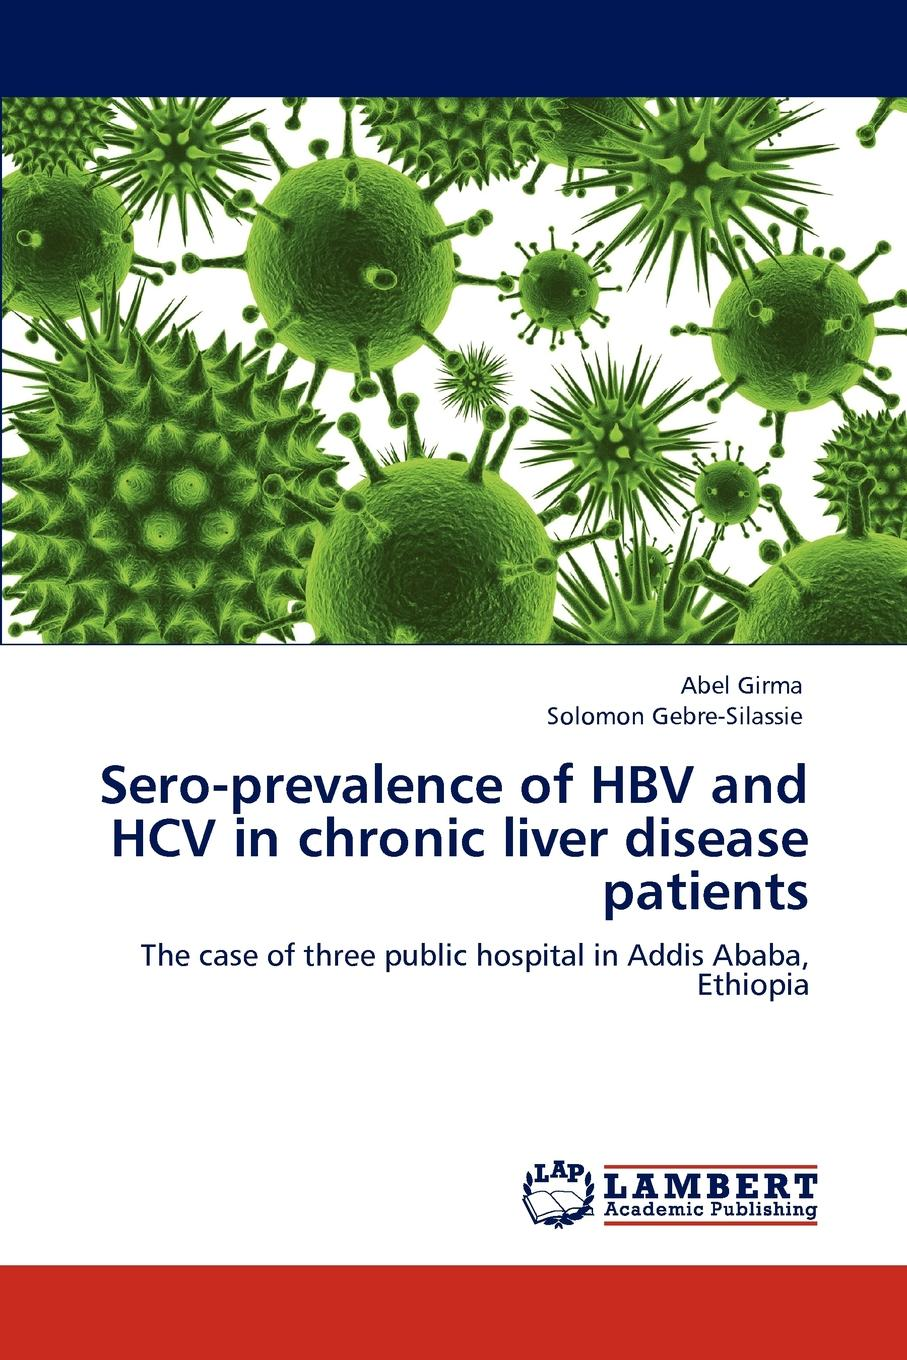 Abel Girma, Solomon Gebre-Silassie Sero-Prevalence of Hbv and Hcv in Chronic Liver Disease Patients vaibhav kumar and latha s oral lichen planus a diagnostic marker of chronic liver disease